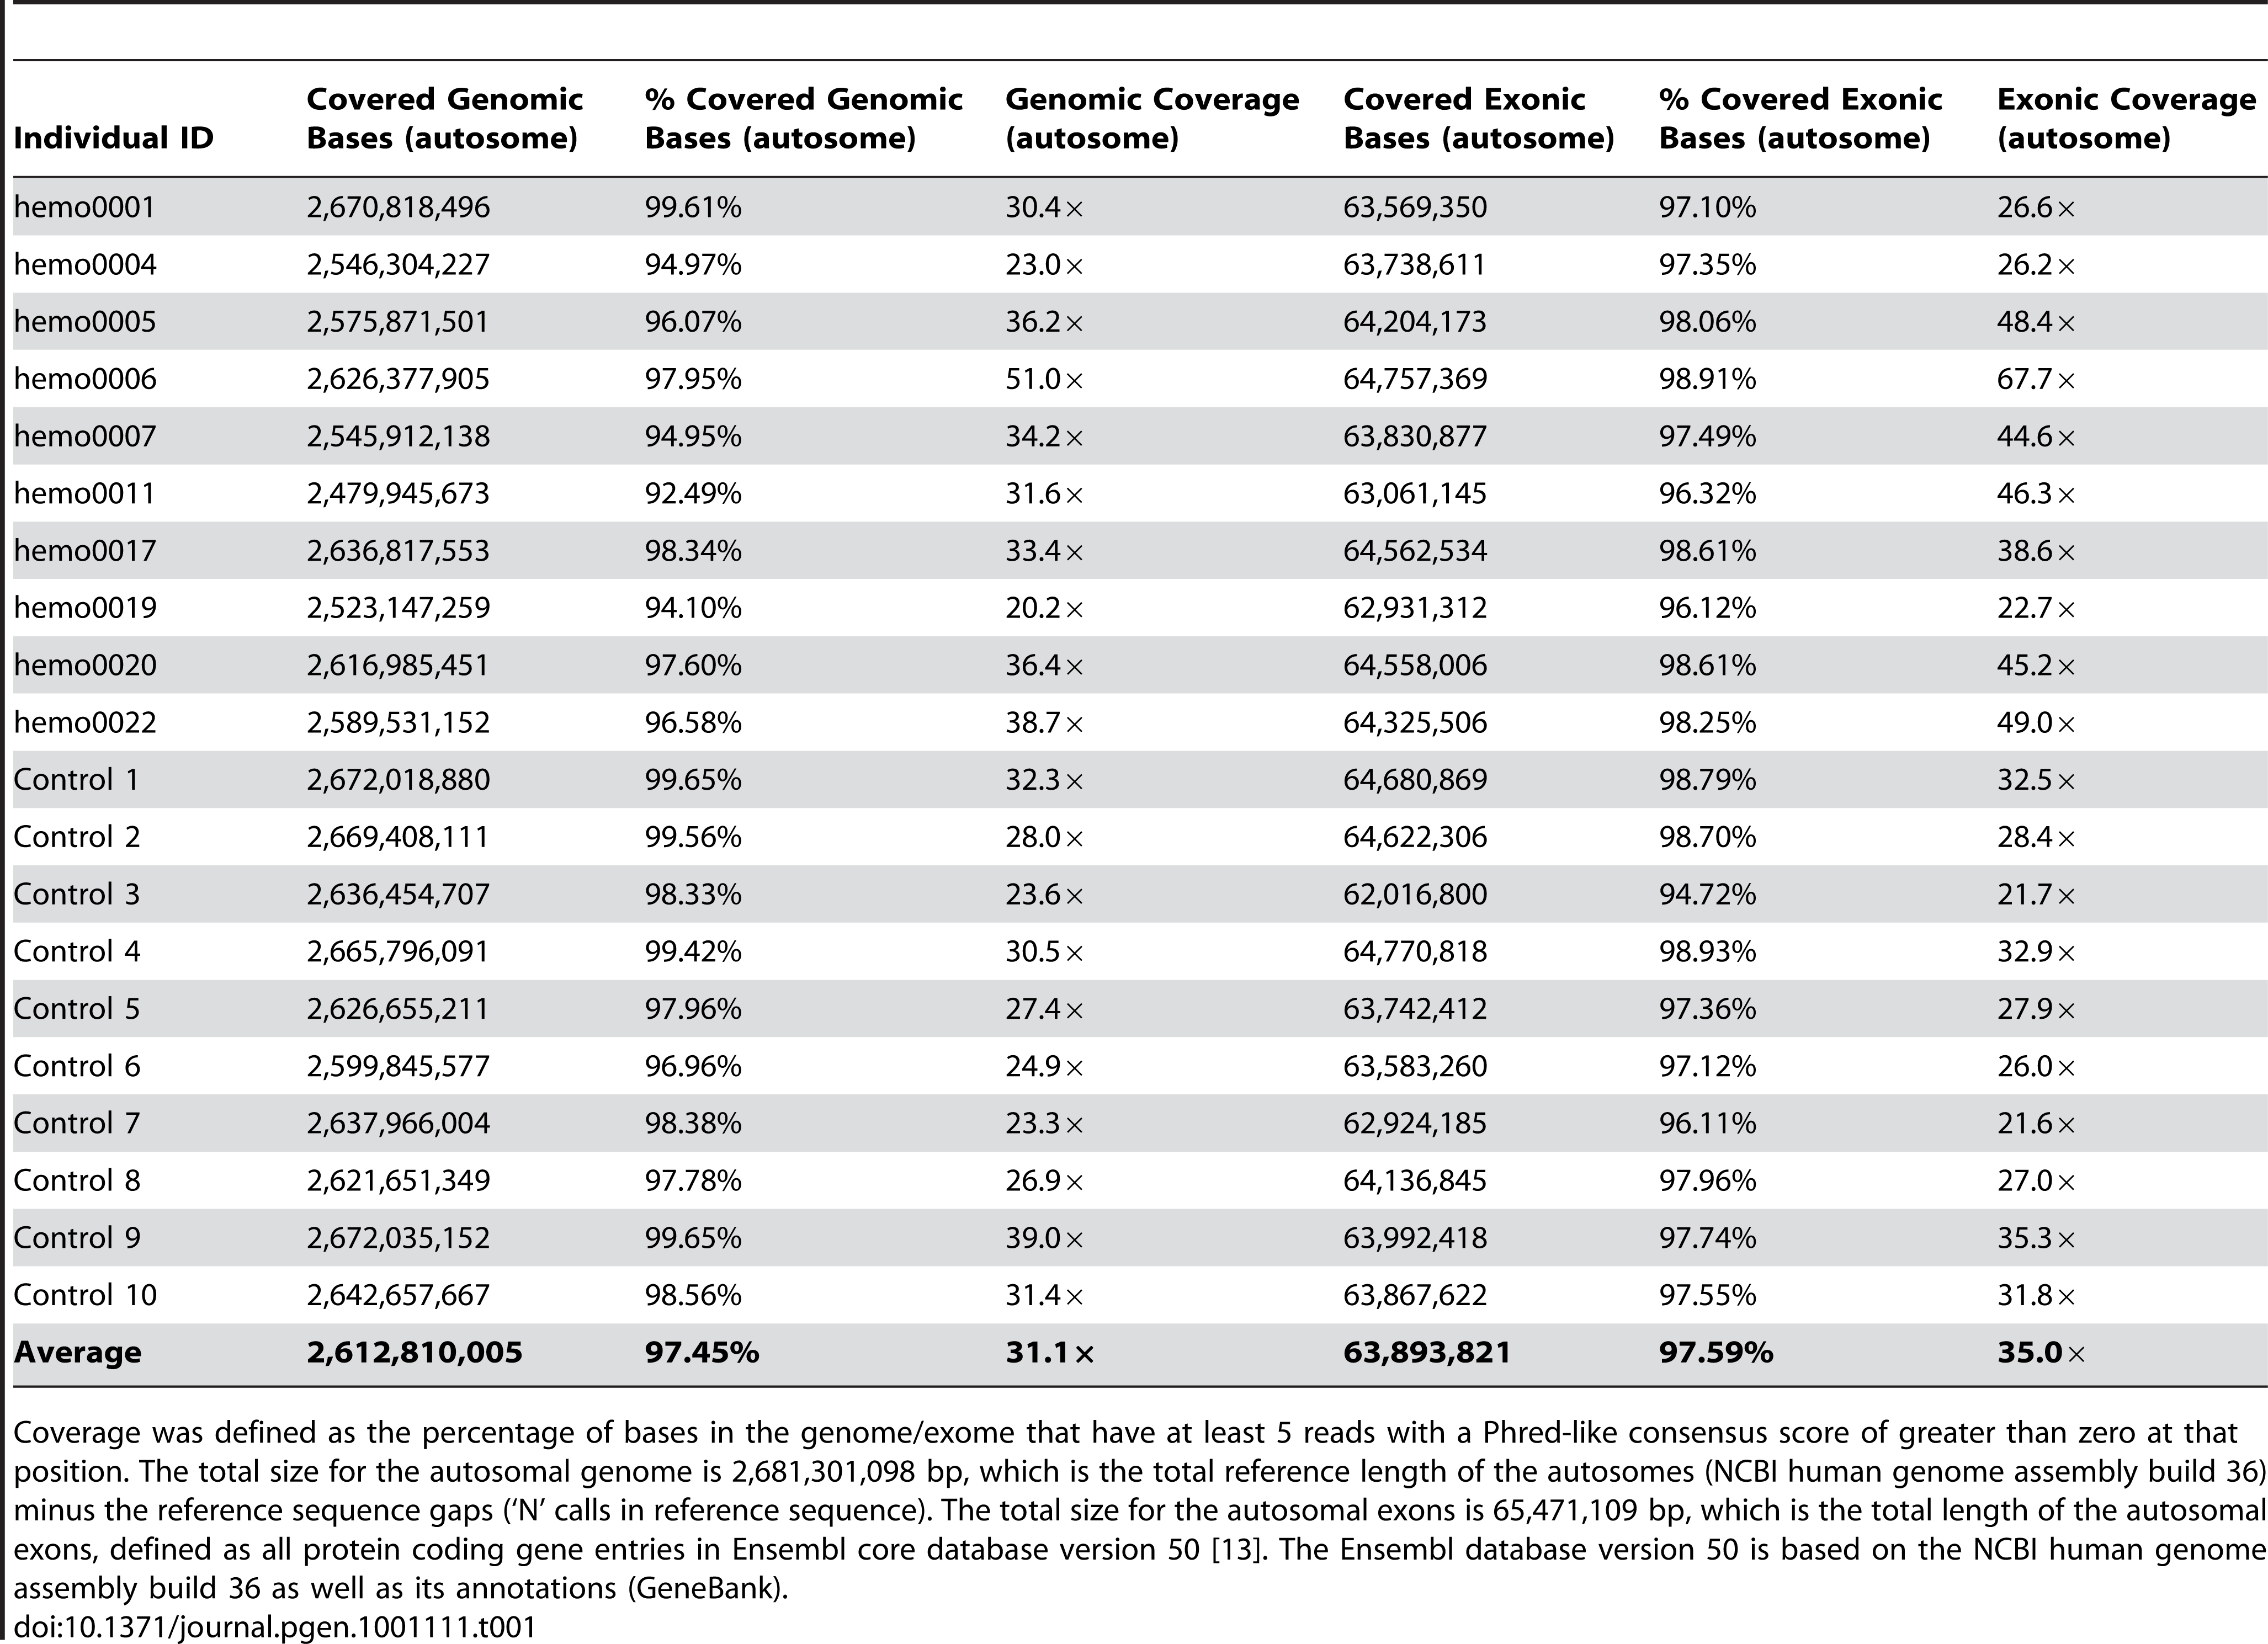 Summary of genomic and exonic coverage in the twenty sequenced genomes.